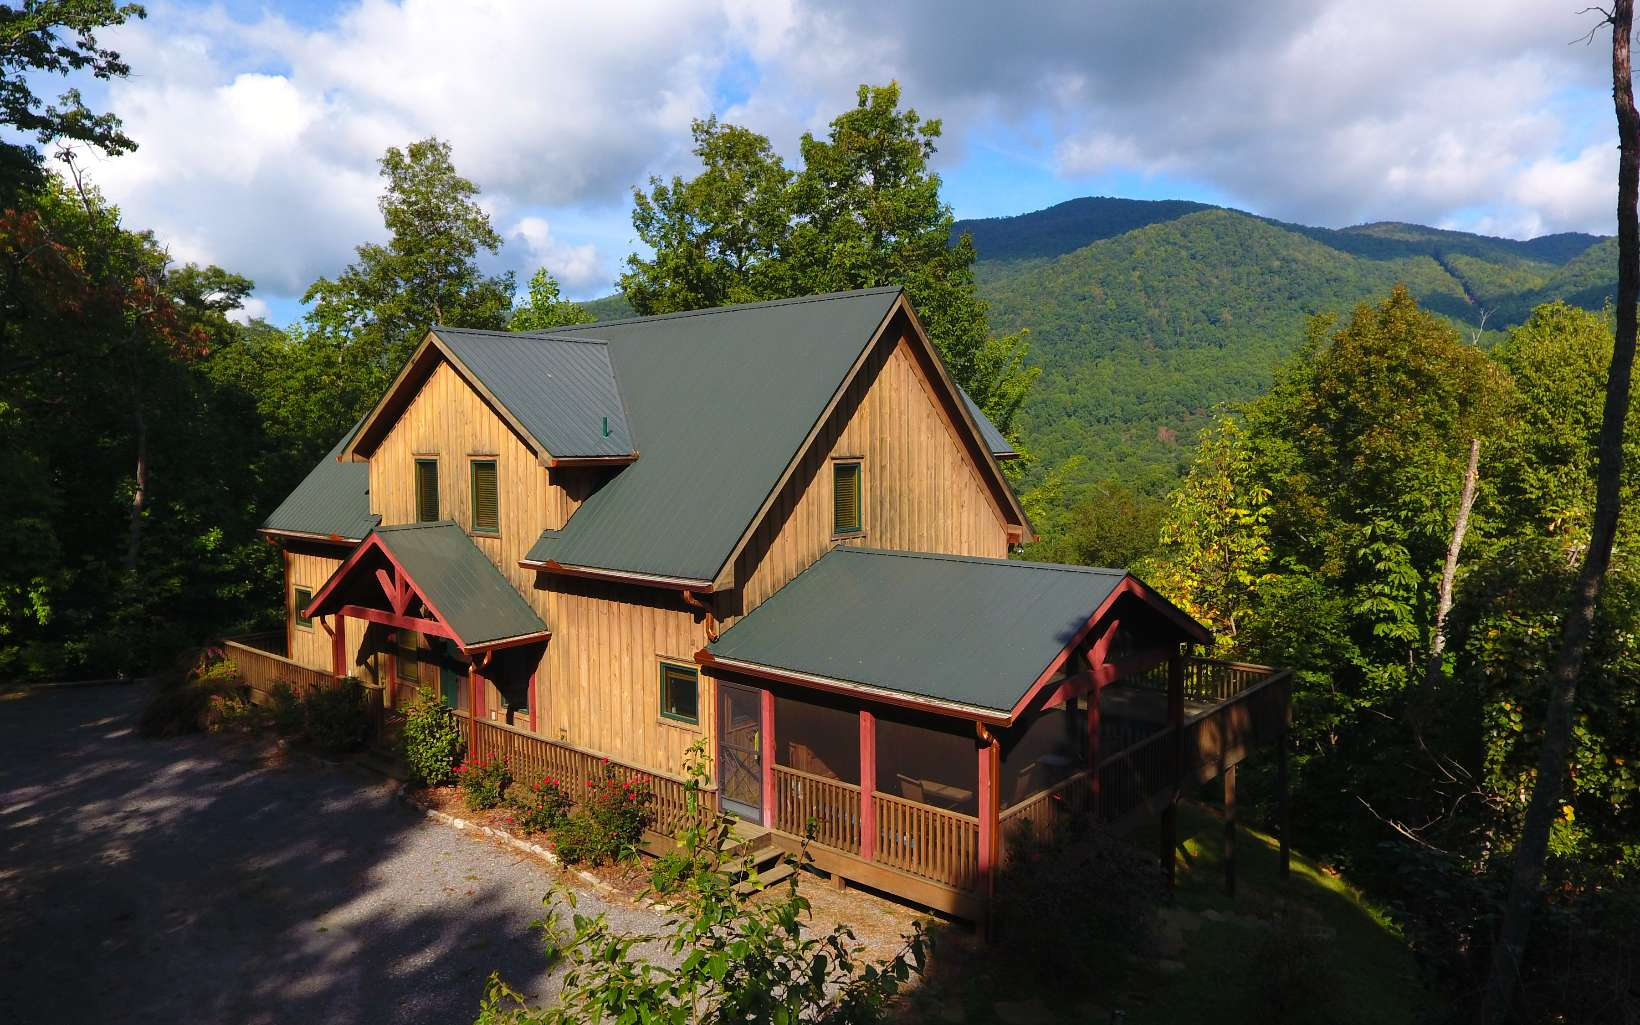 276 COVE VIEW, Hayesville, NC 28904